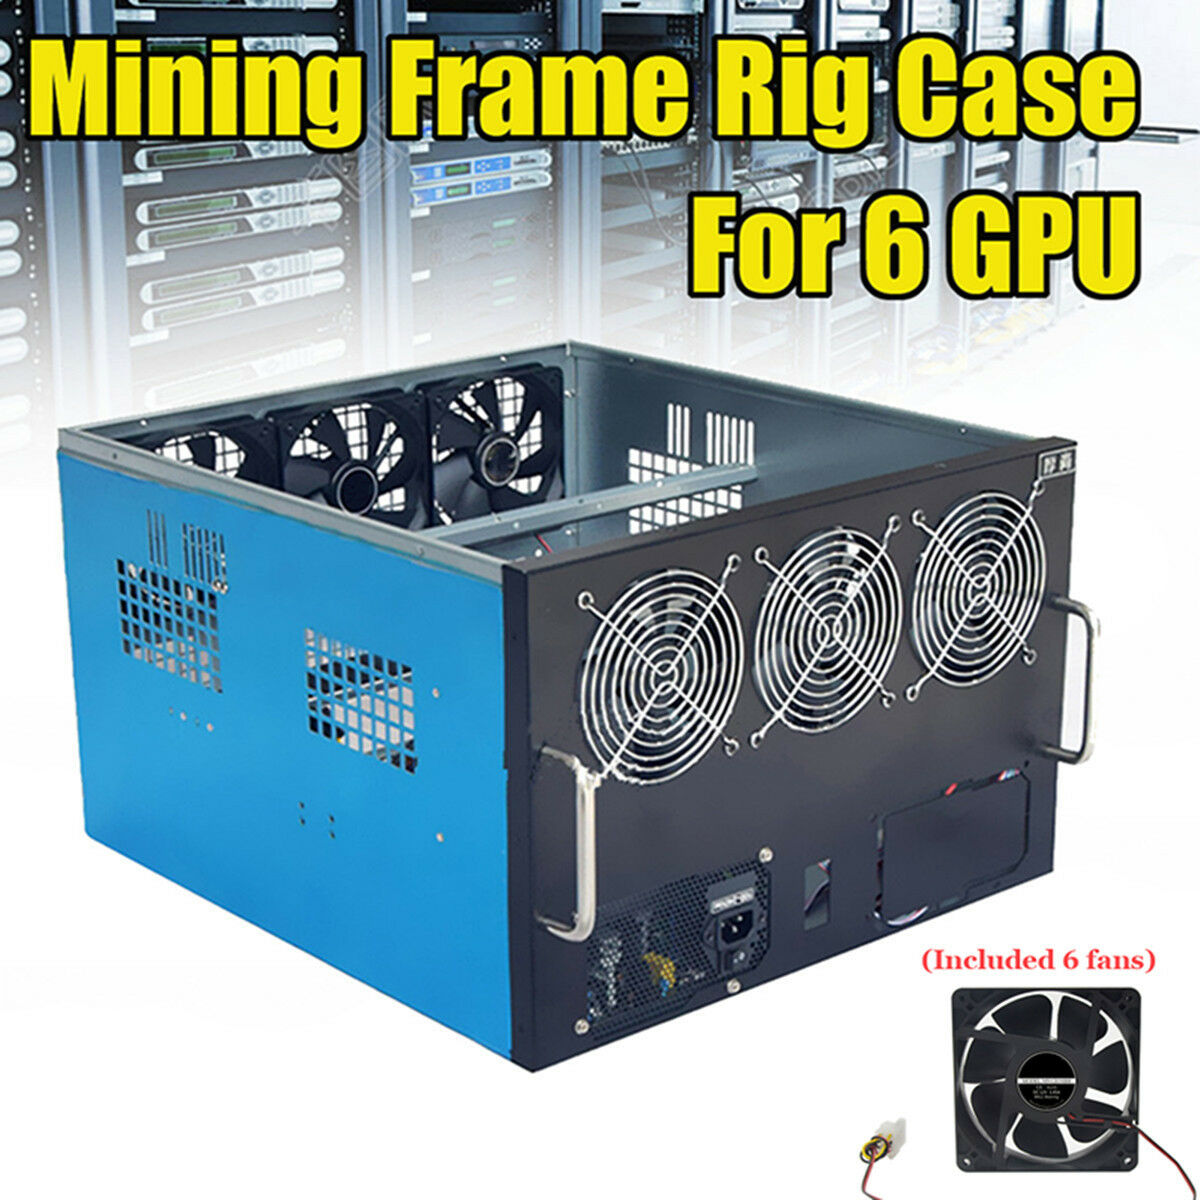 6 GPU MINING Frame Rig Case For ETH Mining Crypto Currency Rigs